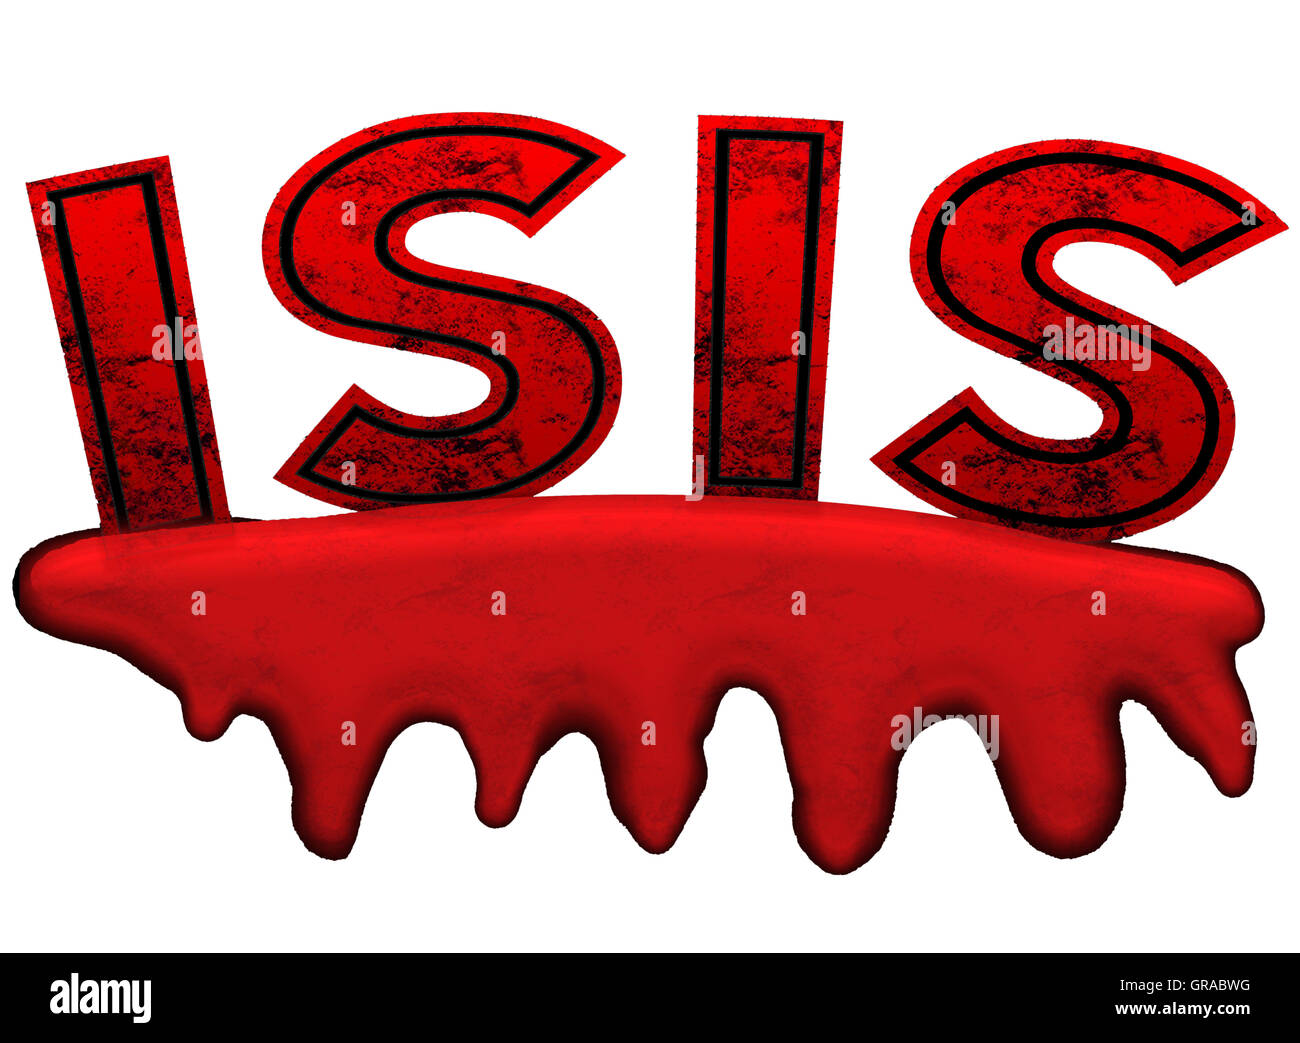 Isis islamic state in iraq and syria extremist militant group isis islamic state in iraq and syria extremist militant group symbol of blood buycottarizona